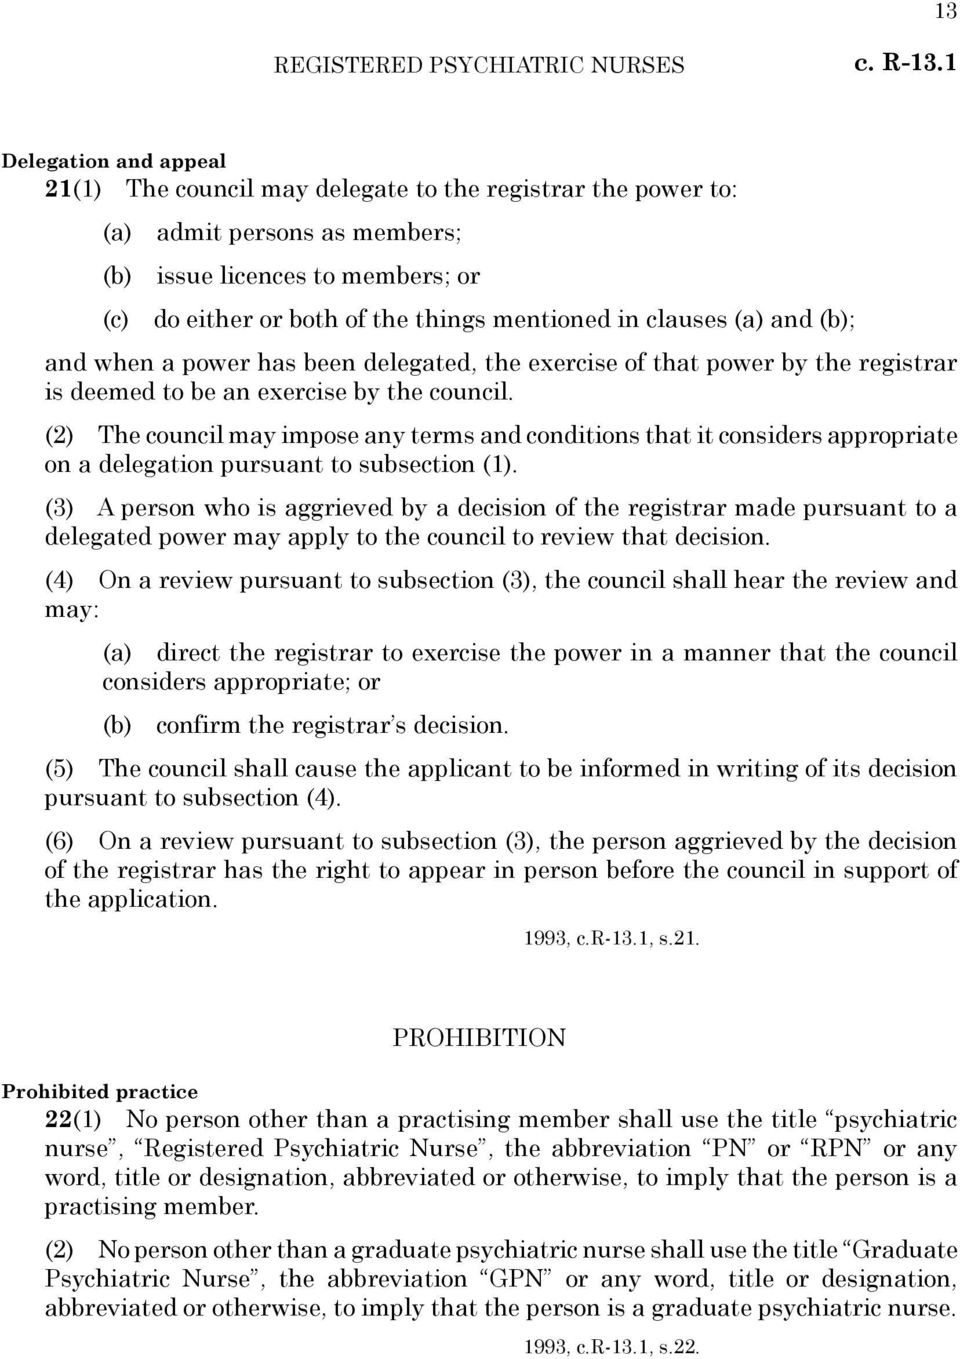 clauses (a) and (b); and when a power has been delegated, the exercise of that power by the registrar is deemed to be an exercise by the council.